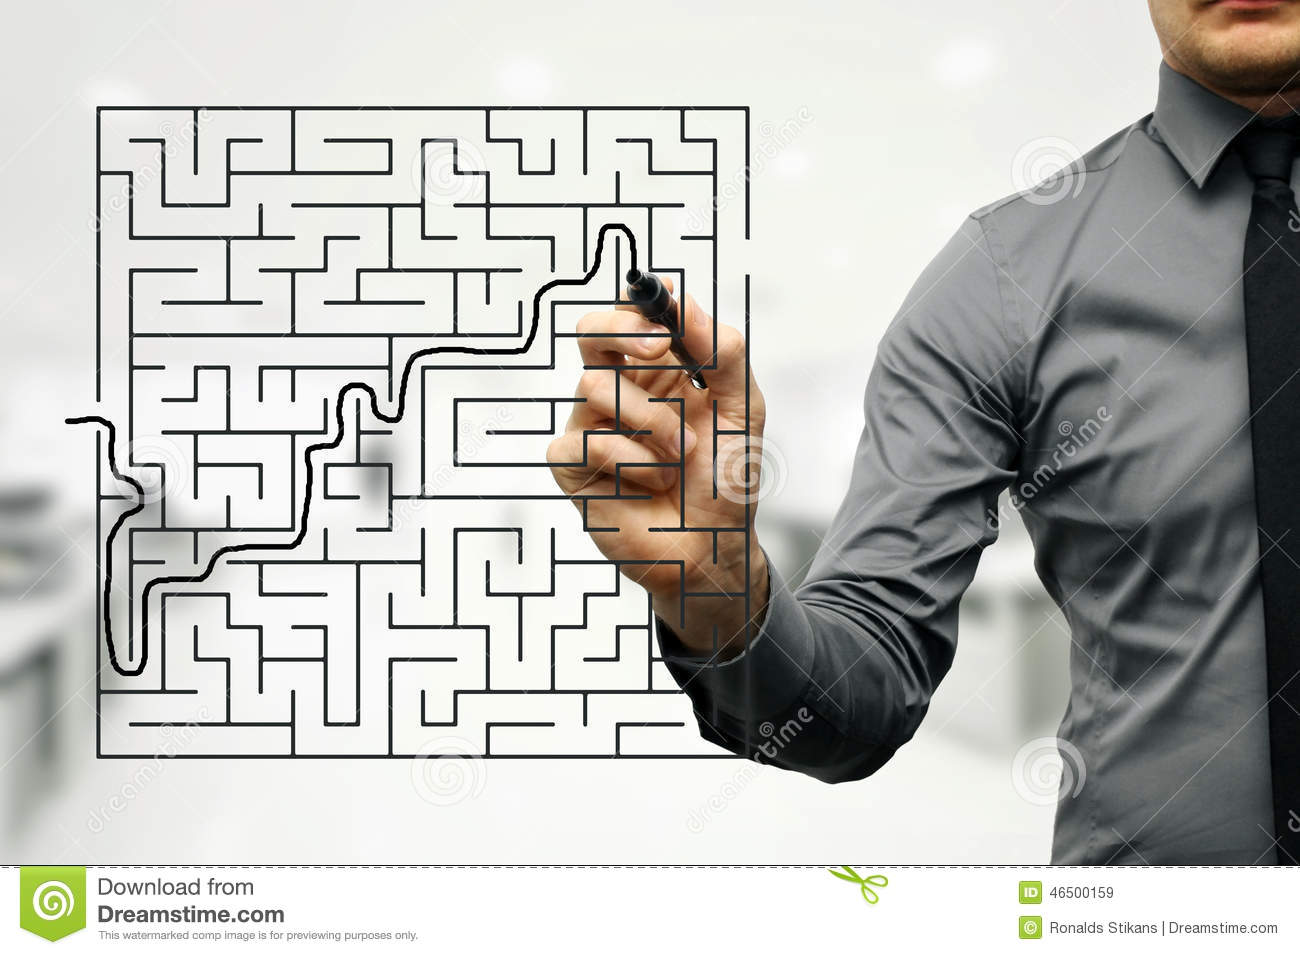 businessman trying to find way out of maze